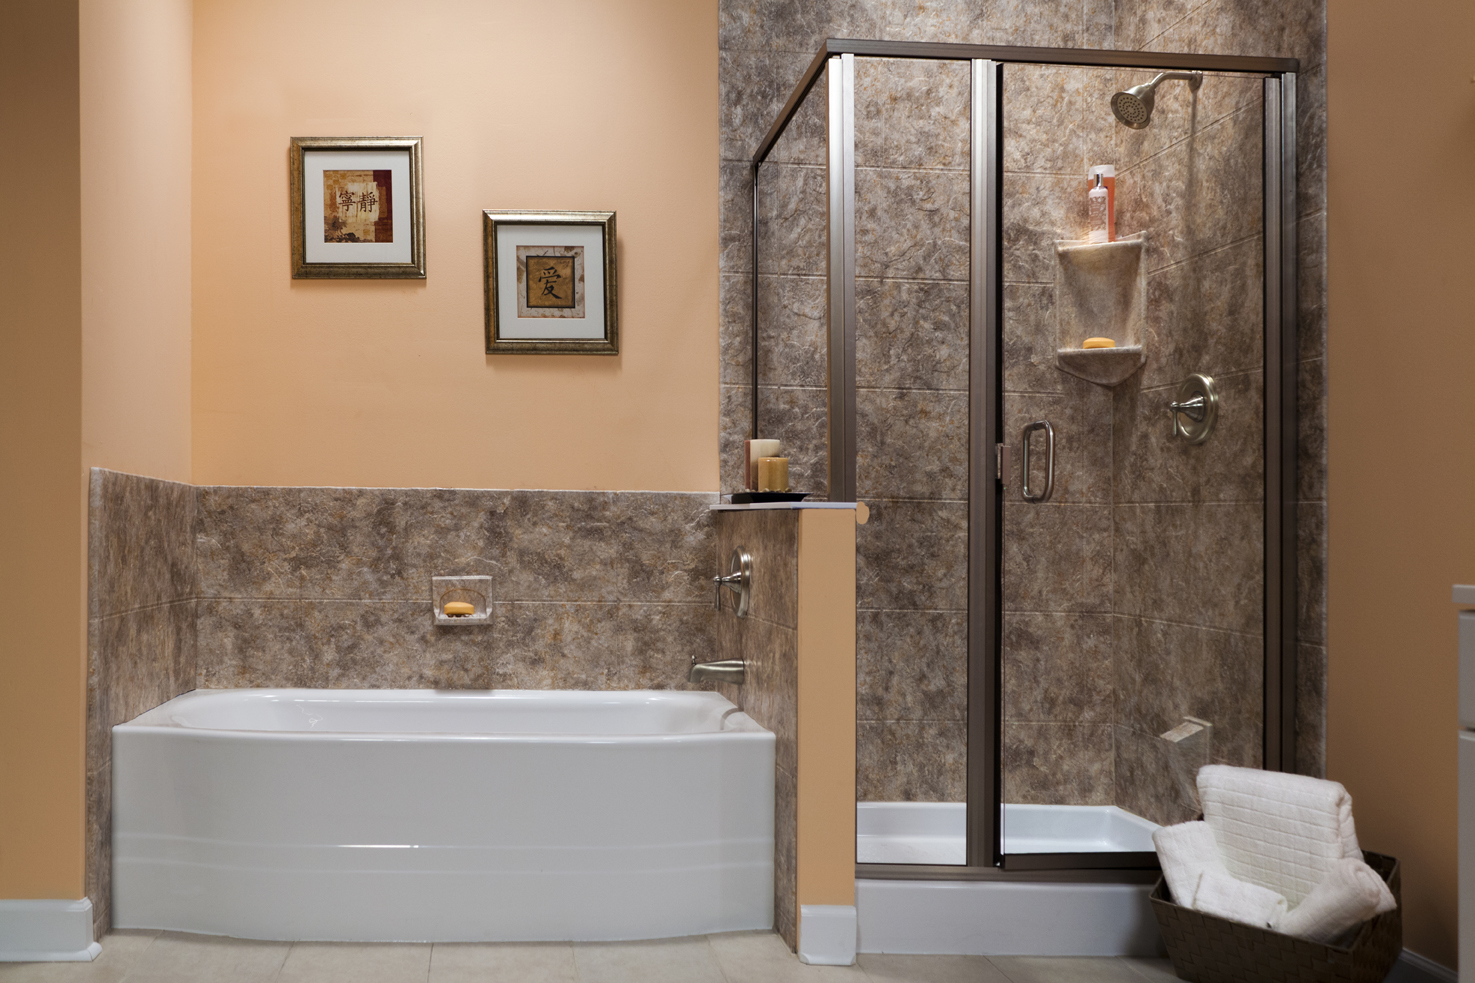 JPG Upstairs_river_rocks  White_Curved_Bath_and_White_Shower_Base_with_River_Rock_12x12_Walls__Brushed_Nickel_Photo2_IMG_0975_LR_bci